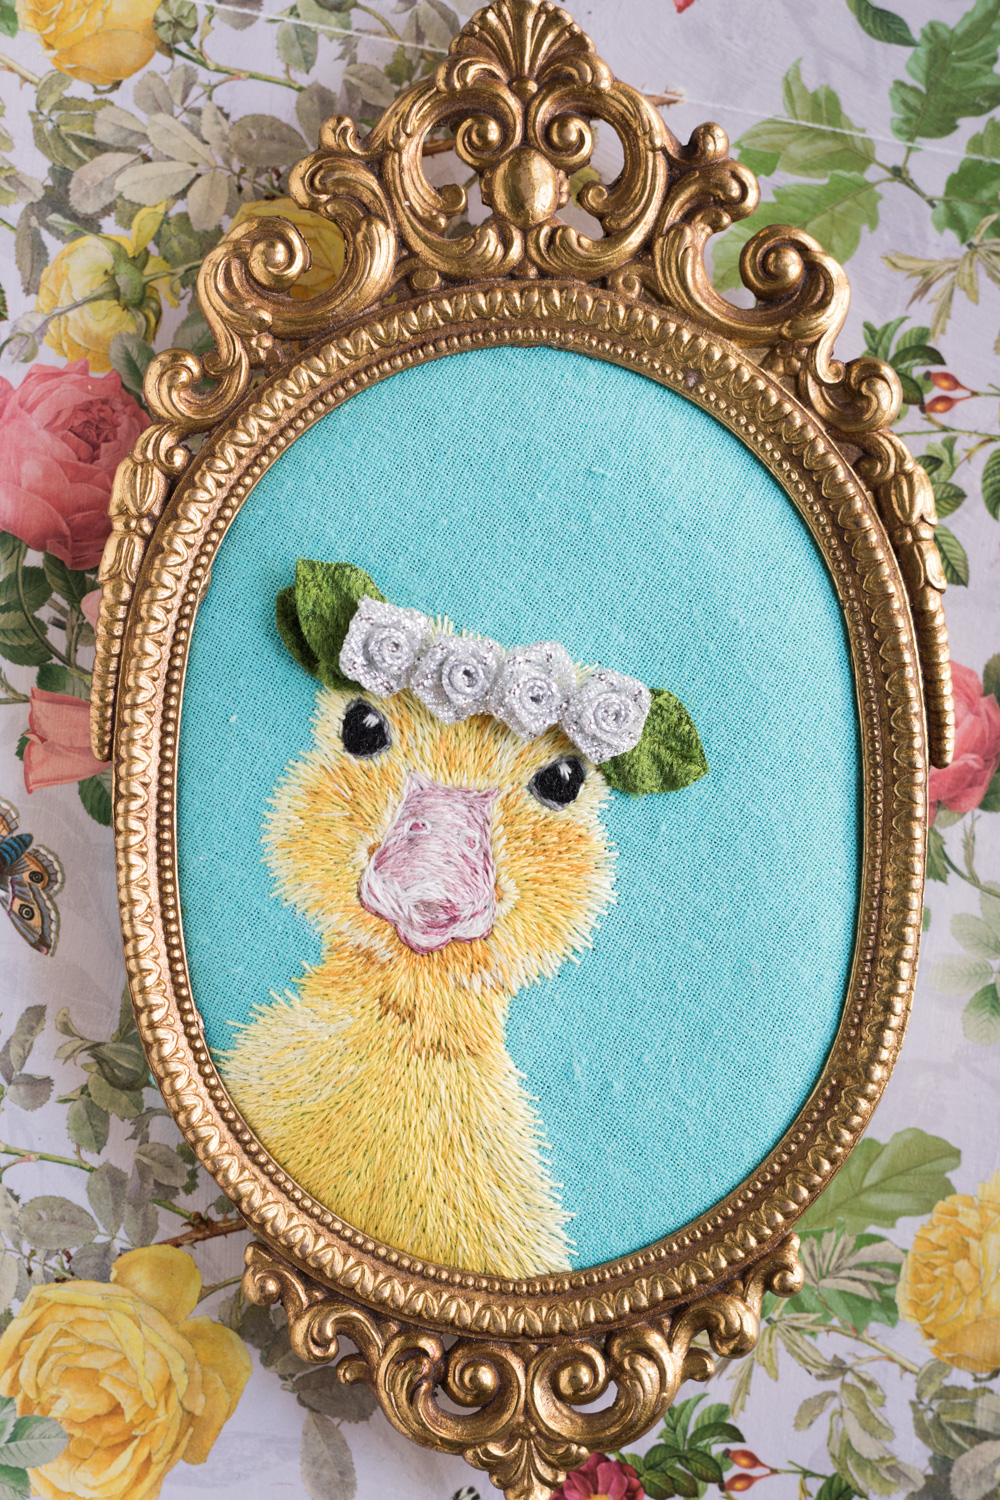 Embroidered duckling in gold ornate oval frame